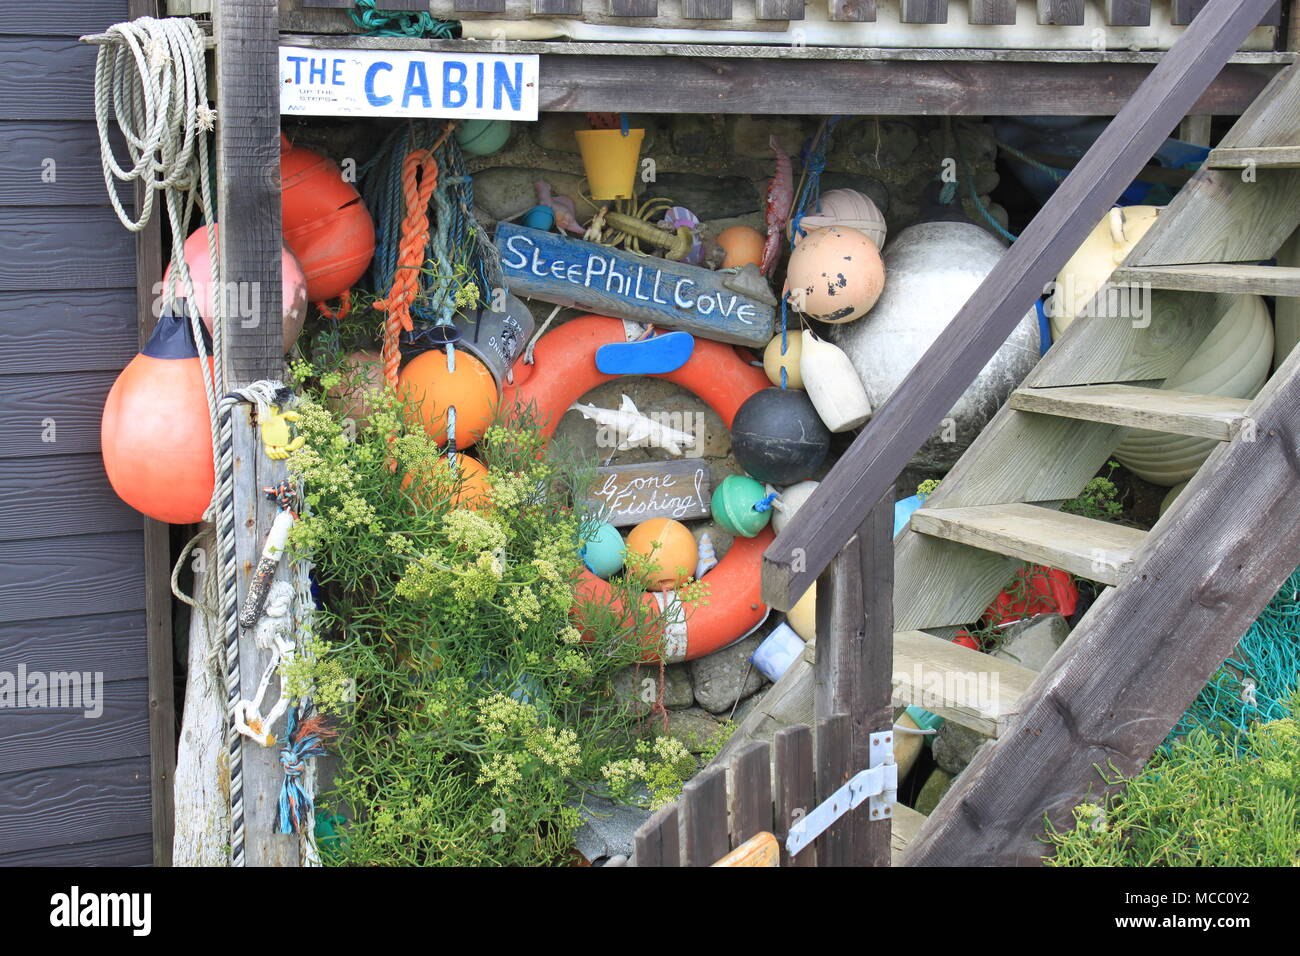 Collection of colourful flotsam and jetsam hanging on a wooden cabin in Steephill Cove, Ventnor, Isle of Wight, England, UK, PETER GRANT - Stock Image